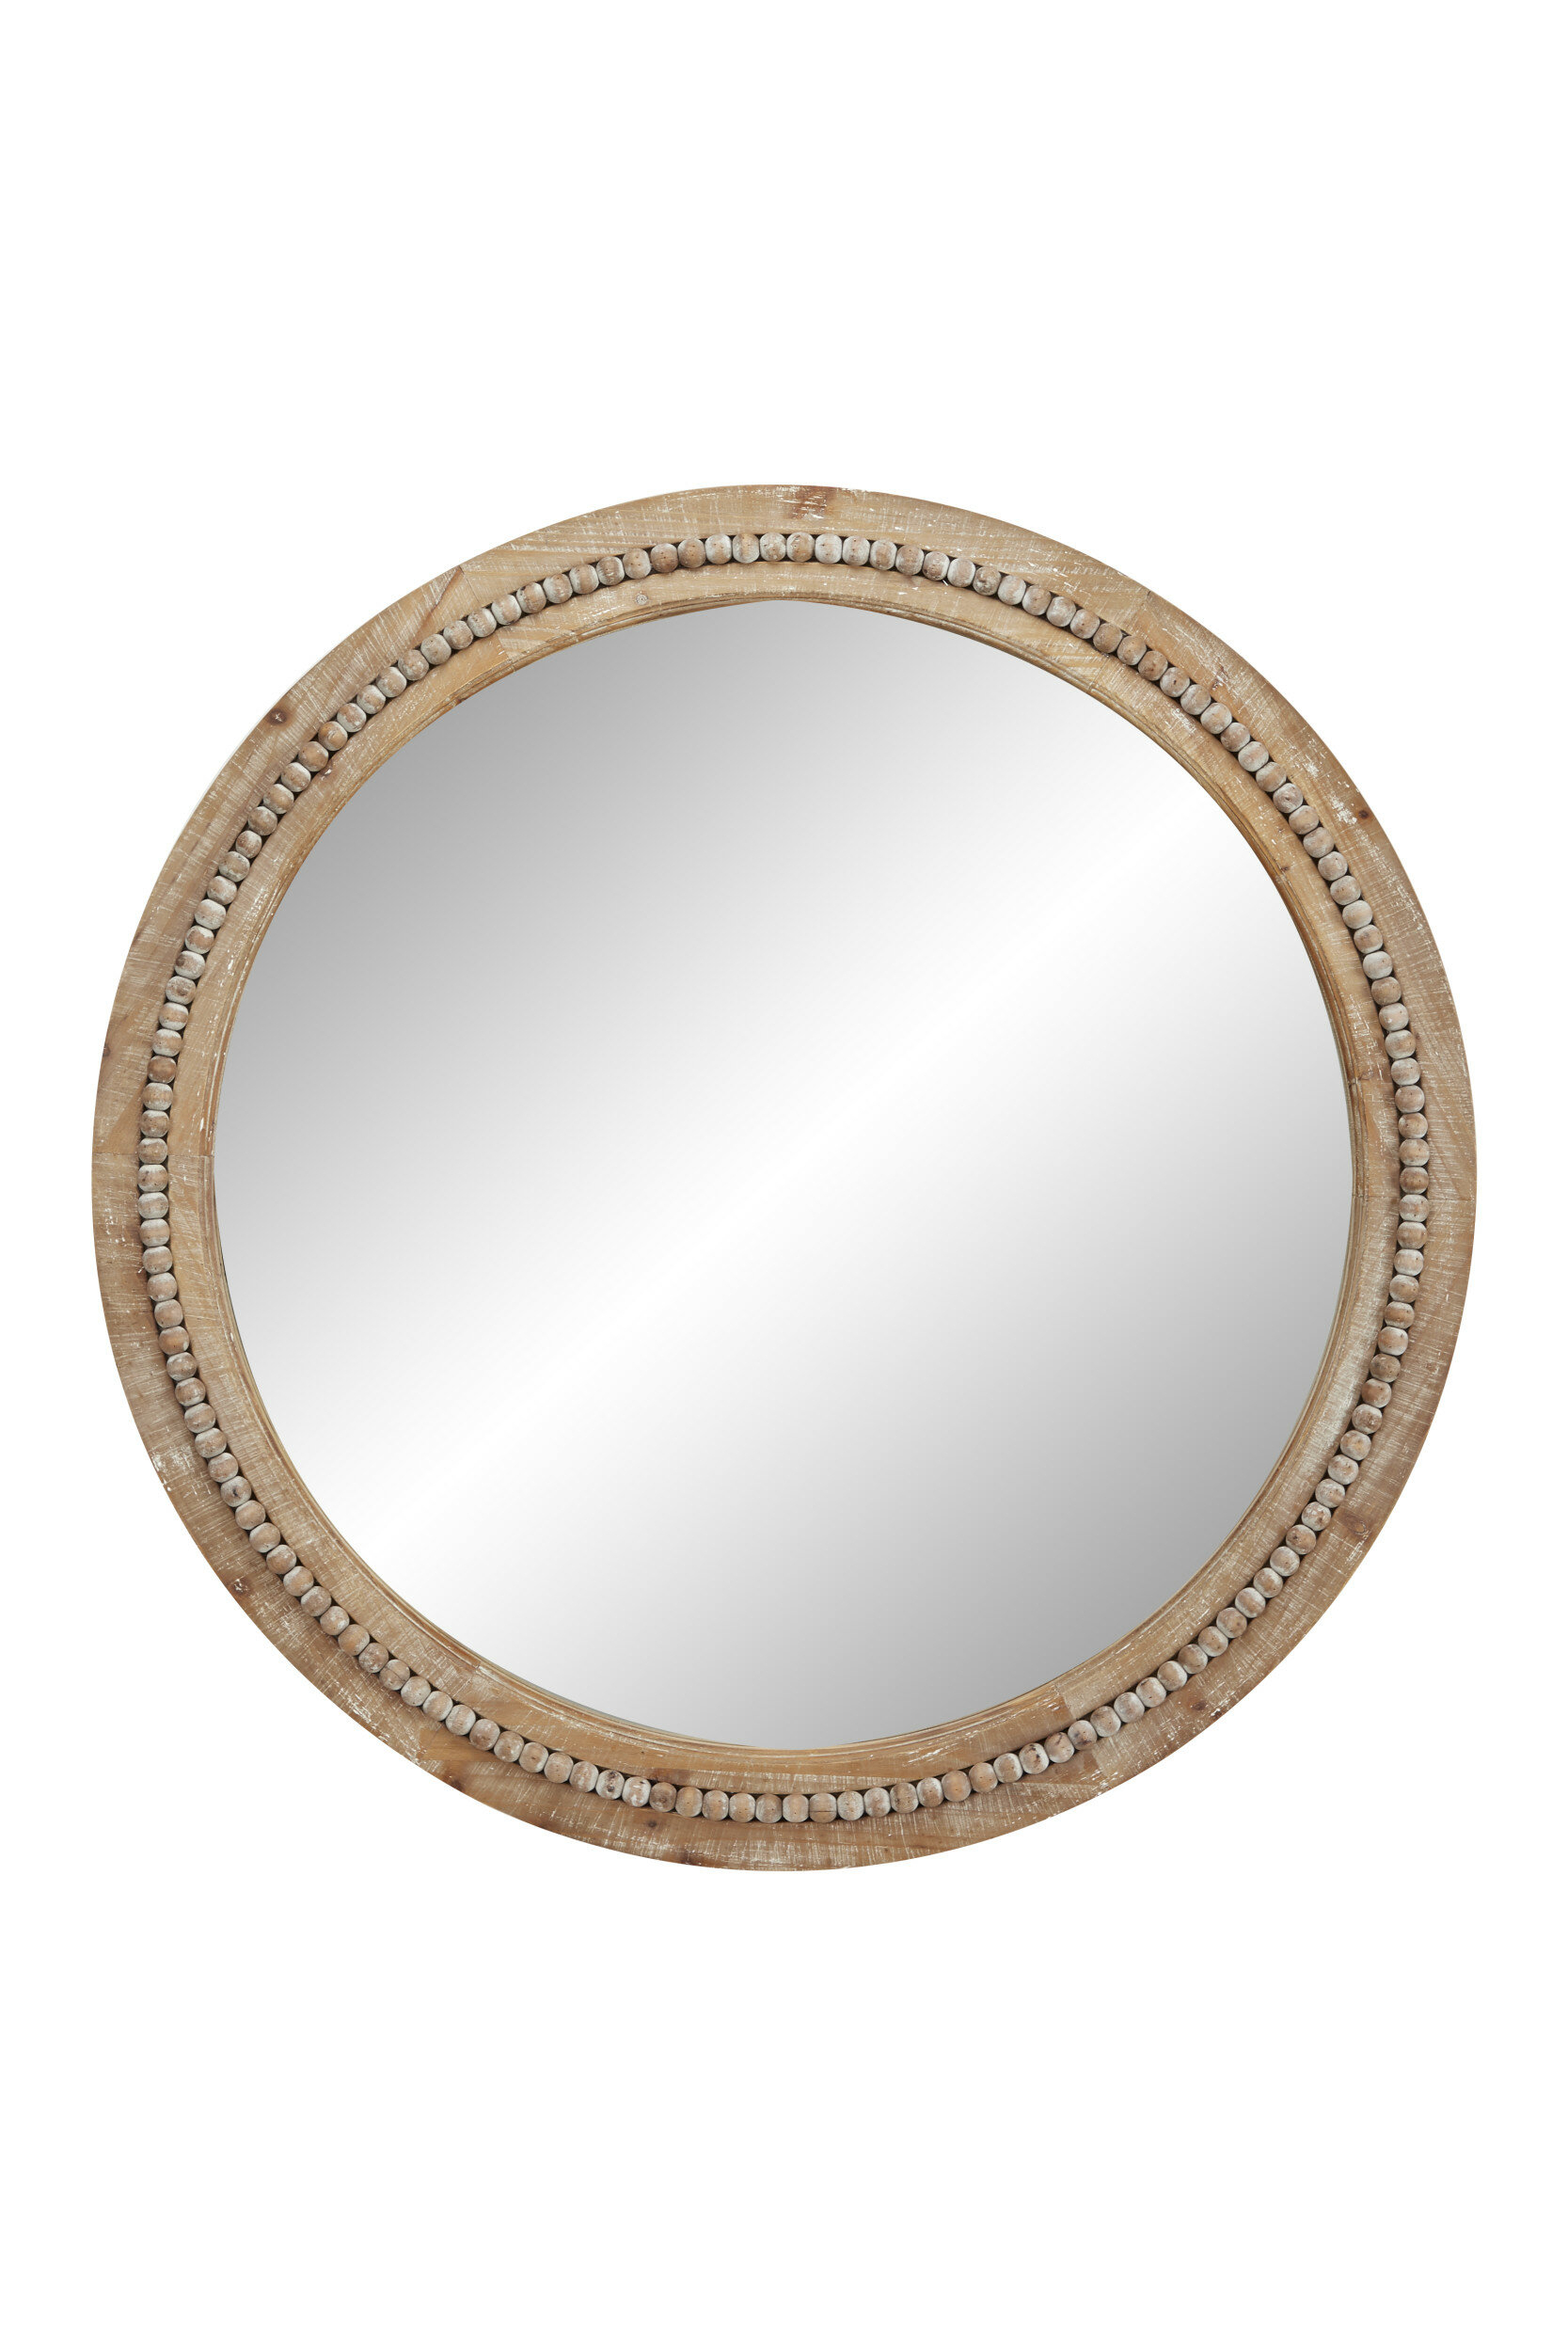 Oakton Round Wood Accent Mirror Regarding Bracelet Traditional Accent Mirrors (View 7 of 20)